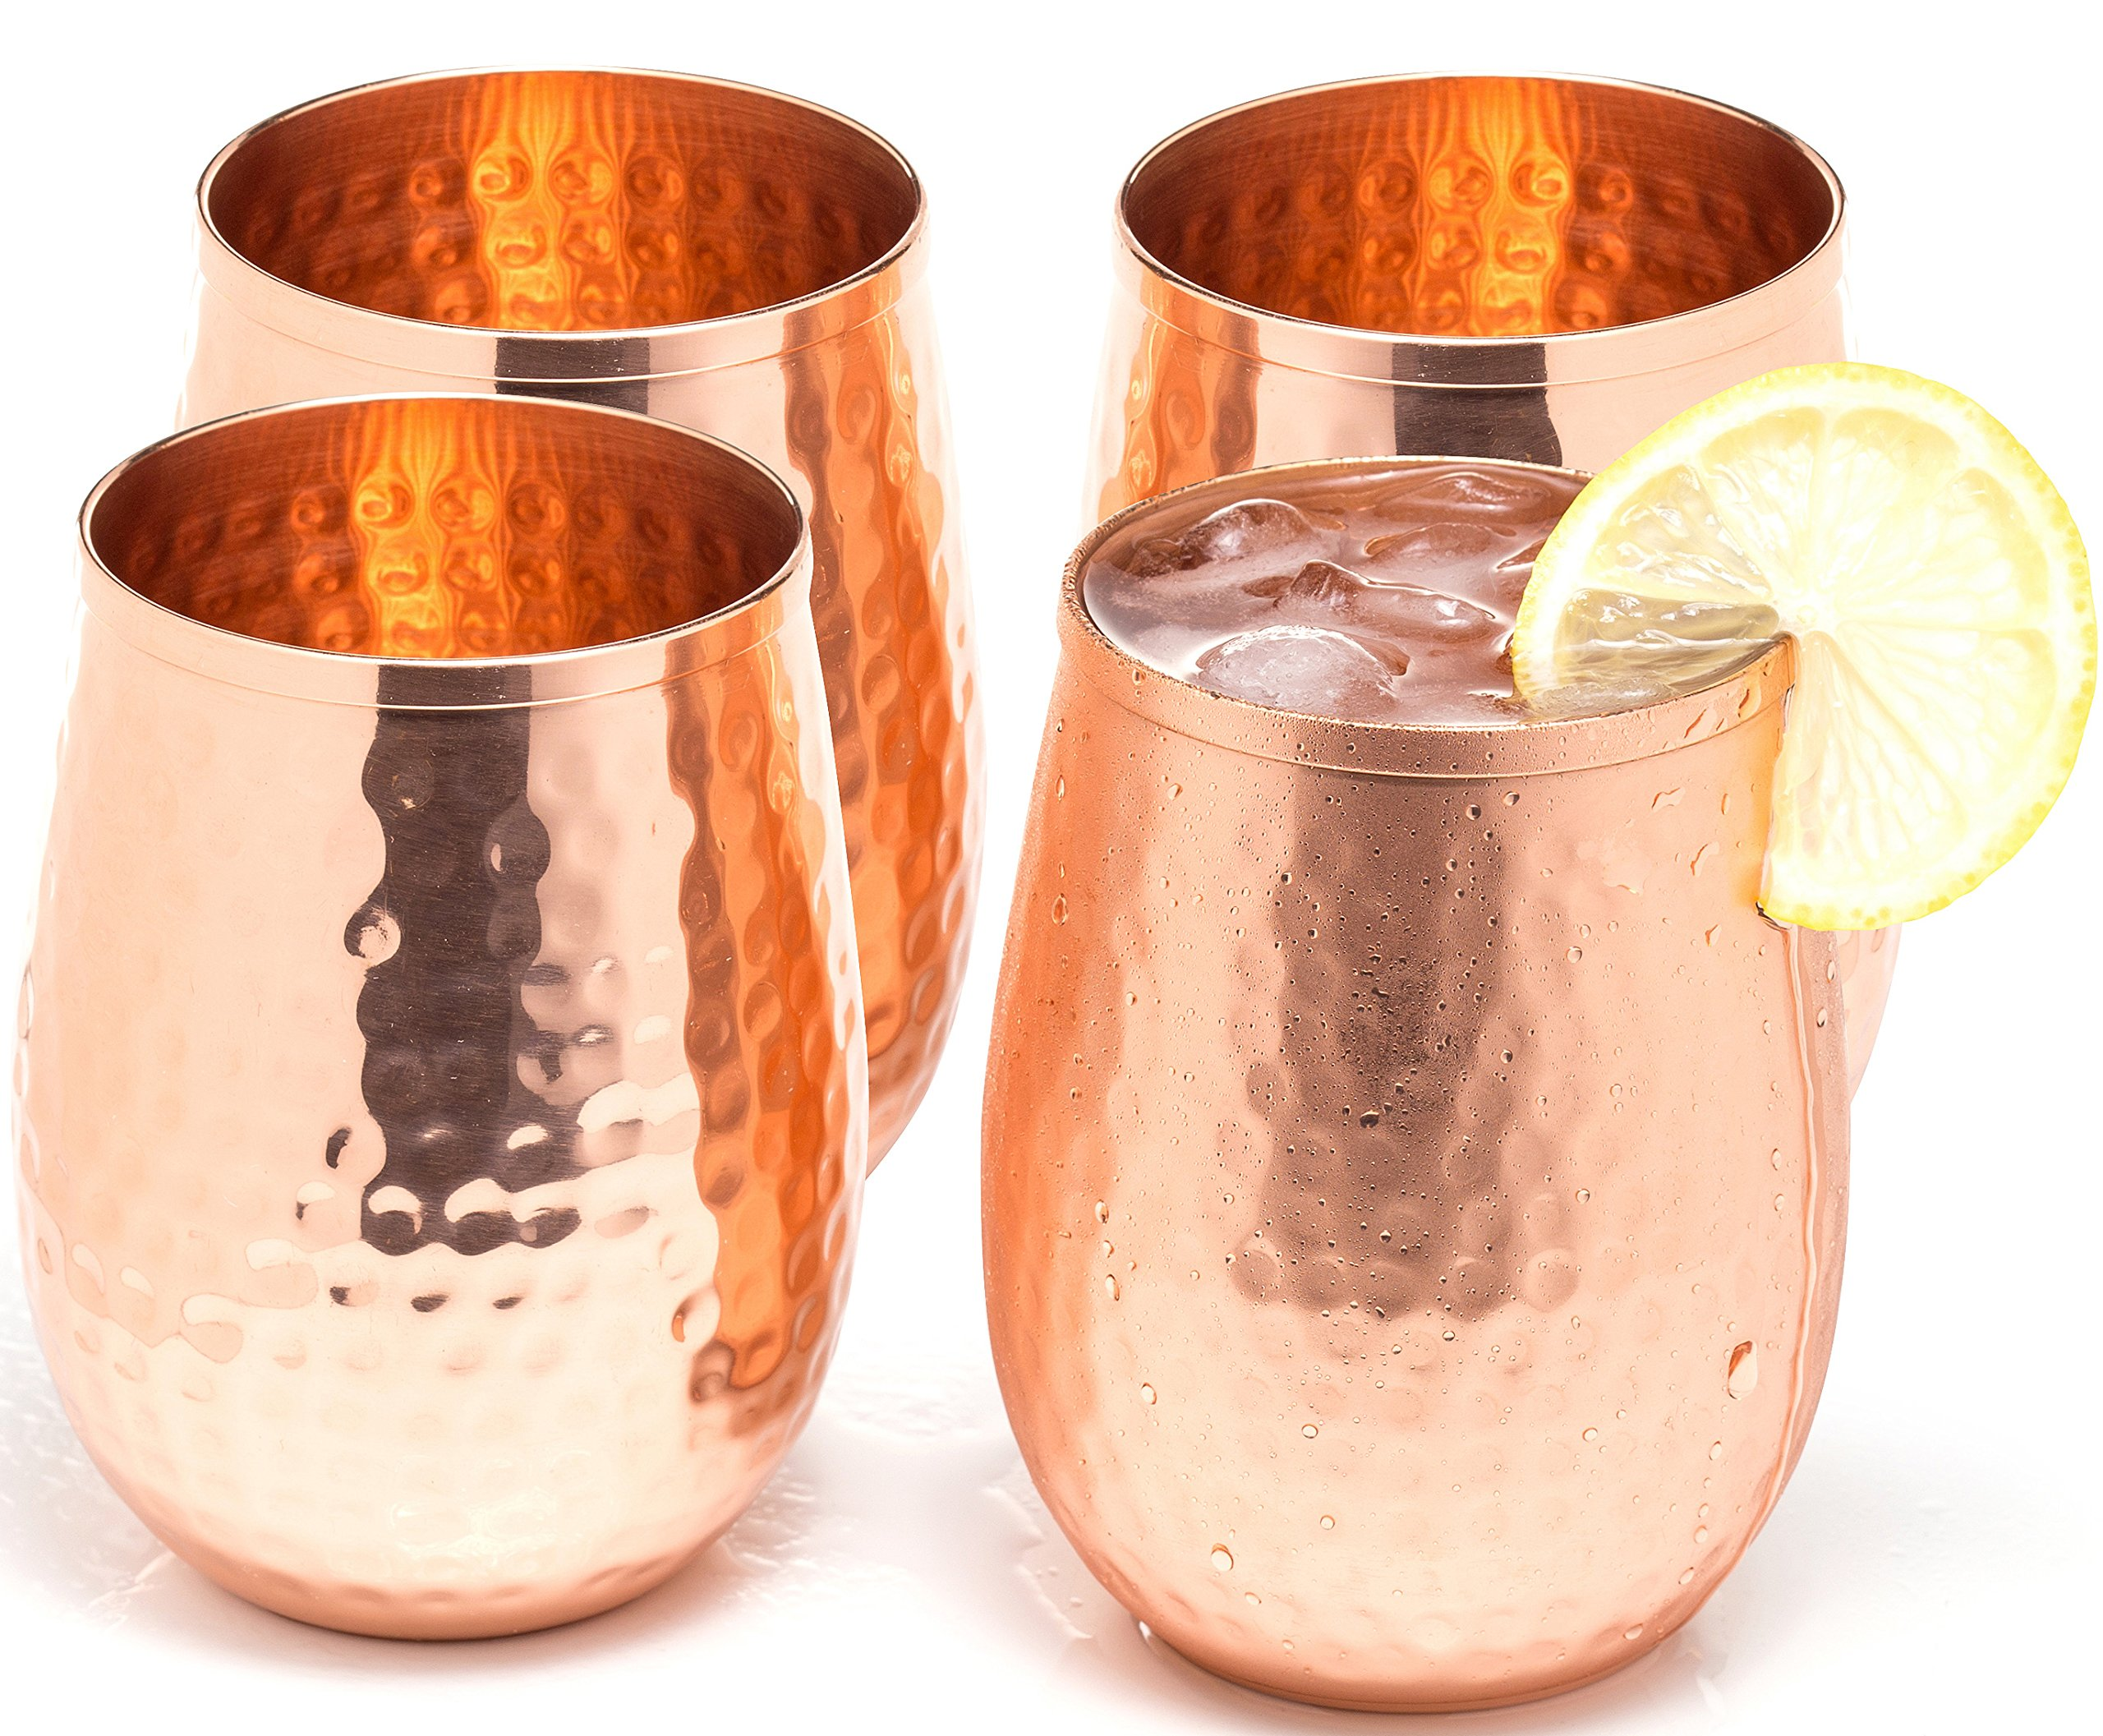 Copper wine glasses set of 4 - 17oz gleaming 100% solid hammered copper stemless wine cups - a perfect gift set for men and women - great copper tumblers for red or white wine and Moscow mules. by Mosscoff